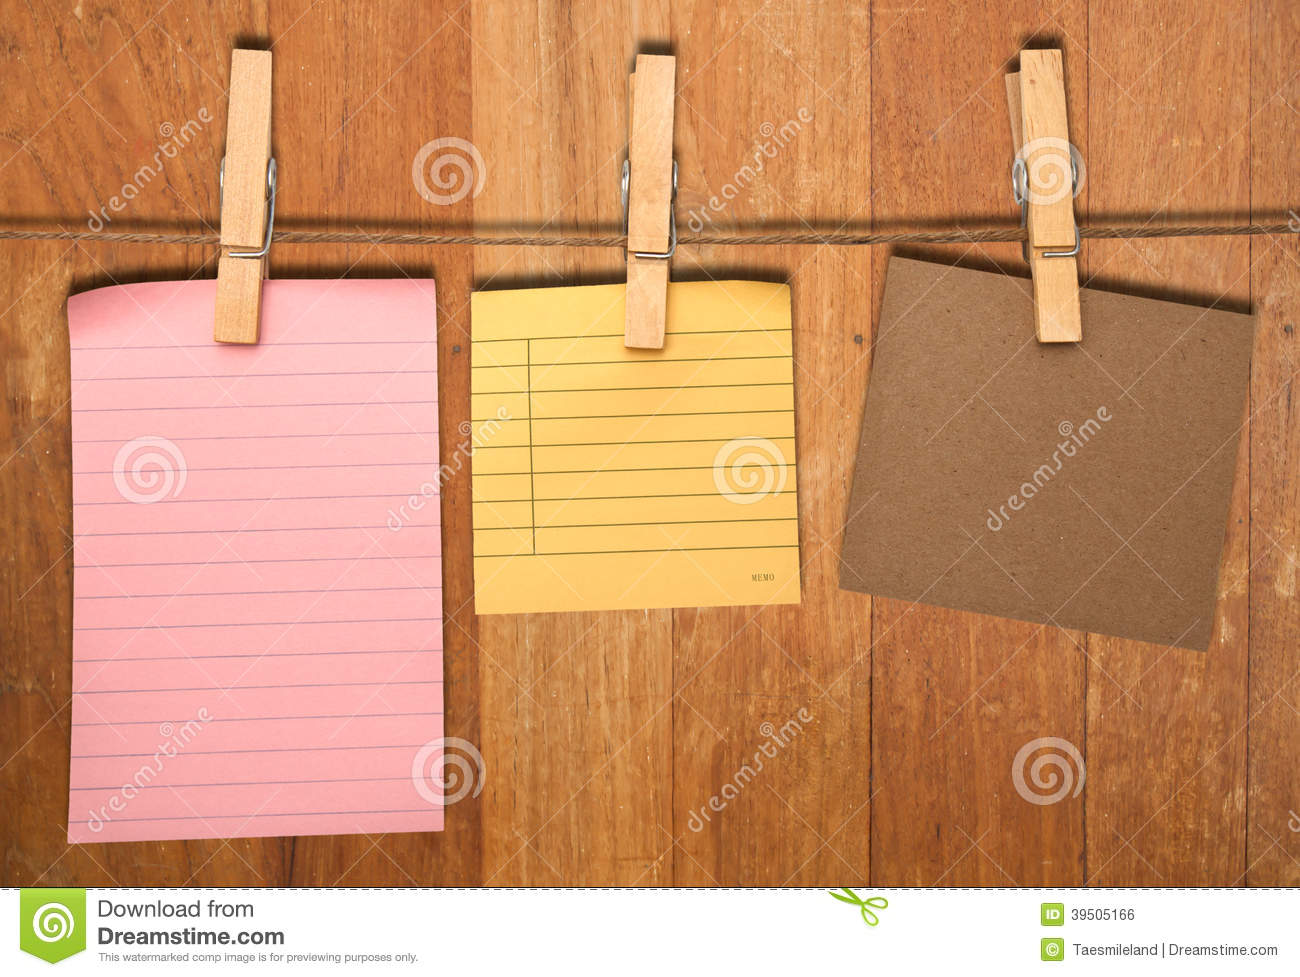 Close up of a notes and a clothes pegs